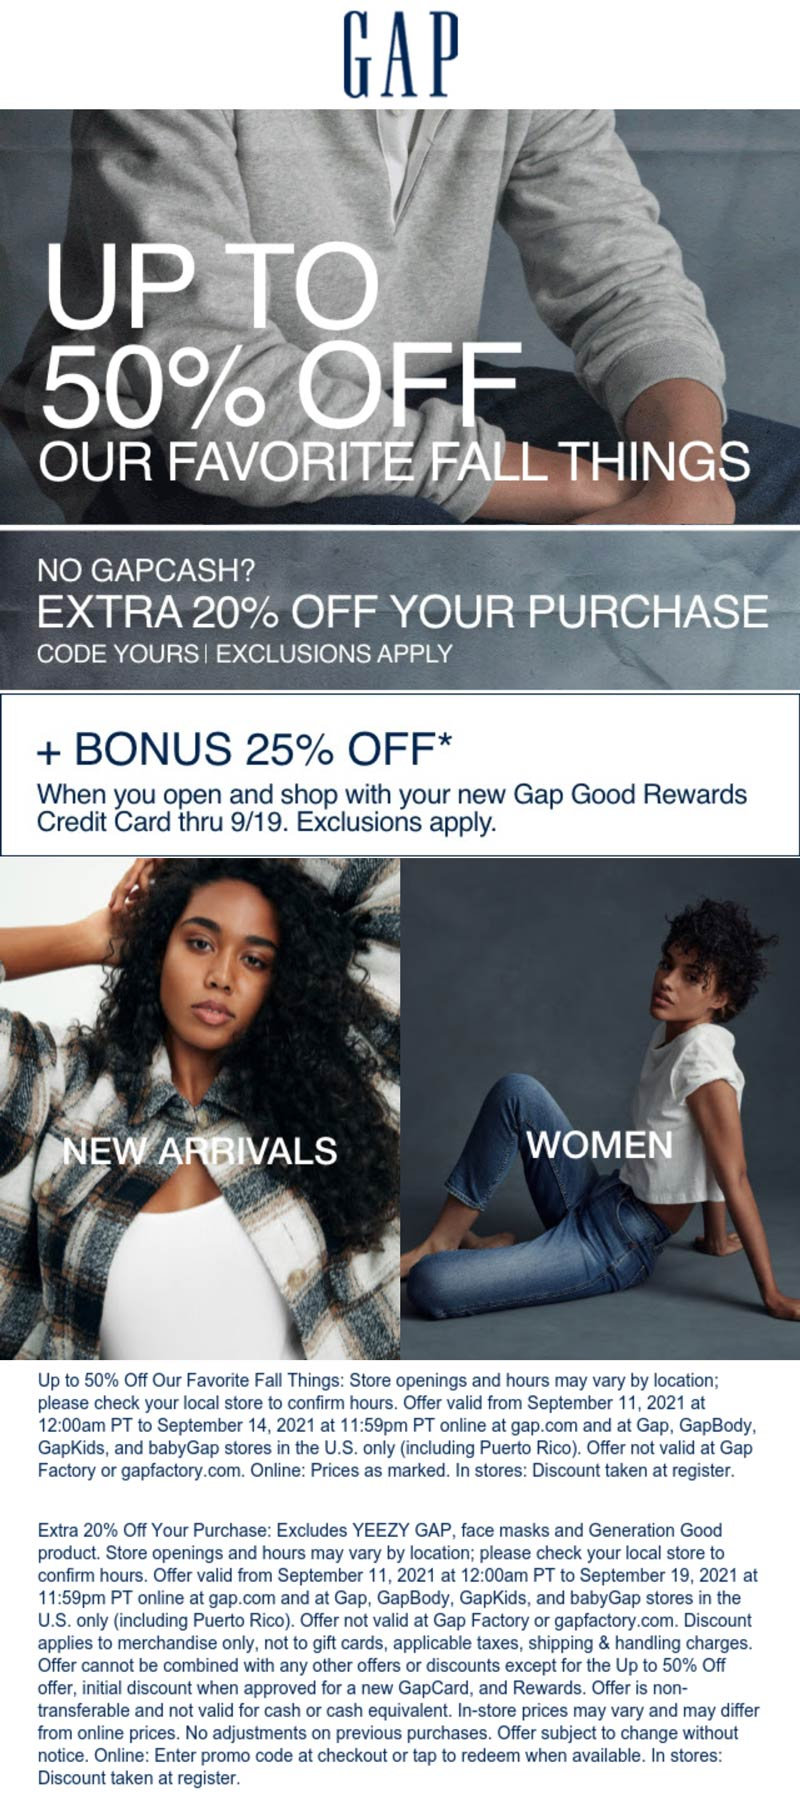 Gap stores Coupon  Extra 20% off & more at Gap via promo code YOURS #gap